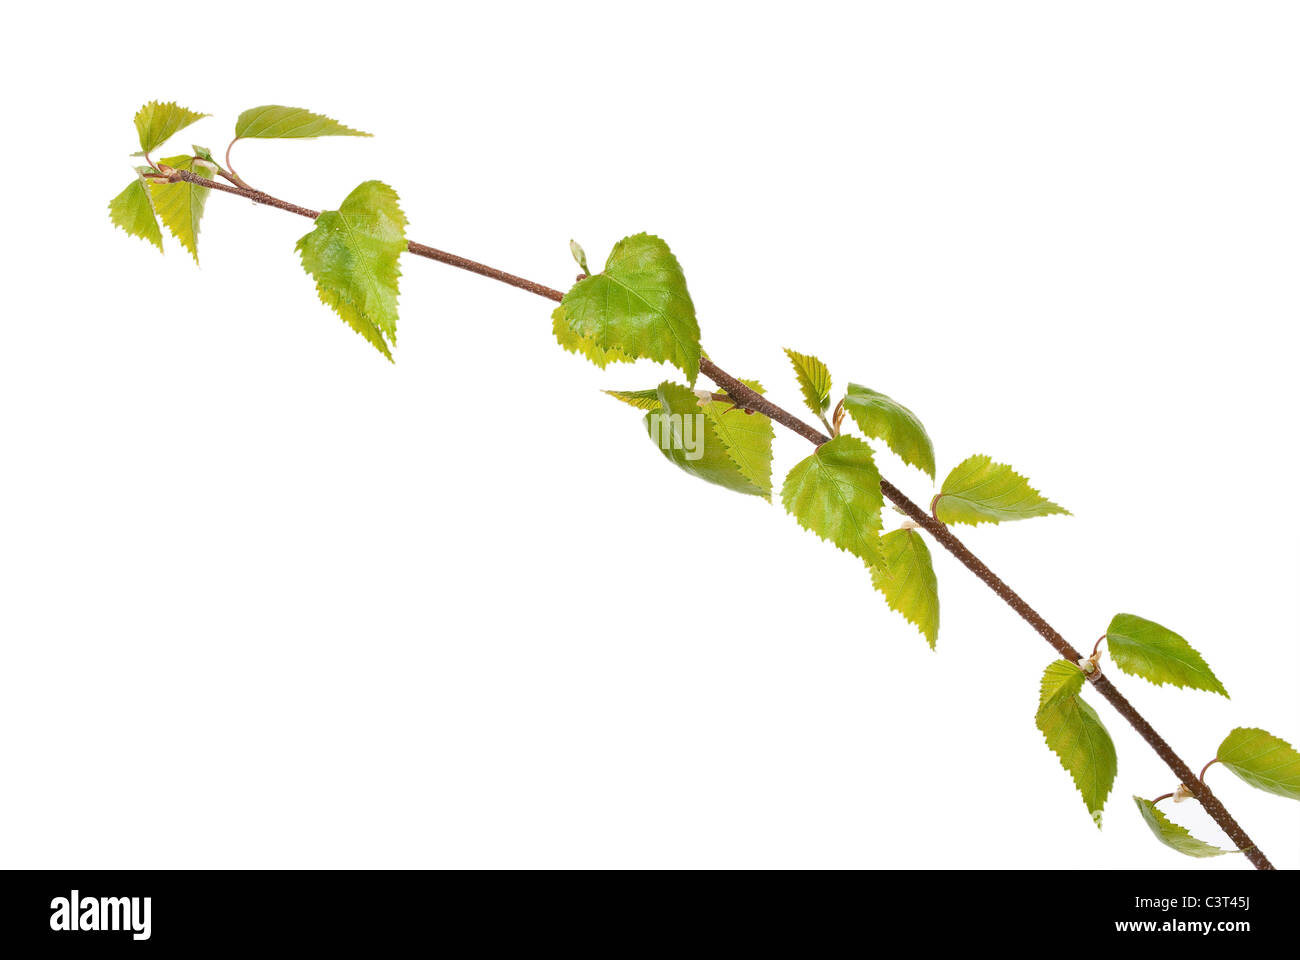 Birch branch isolated on white background - Stock Image